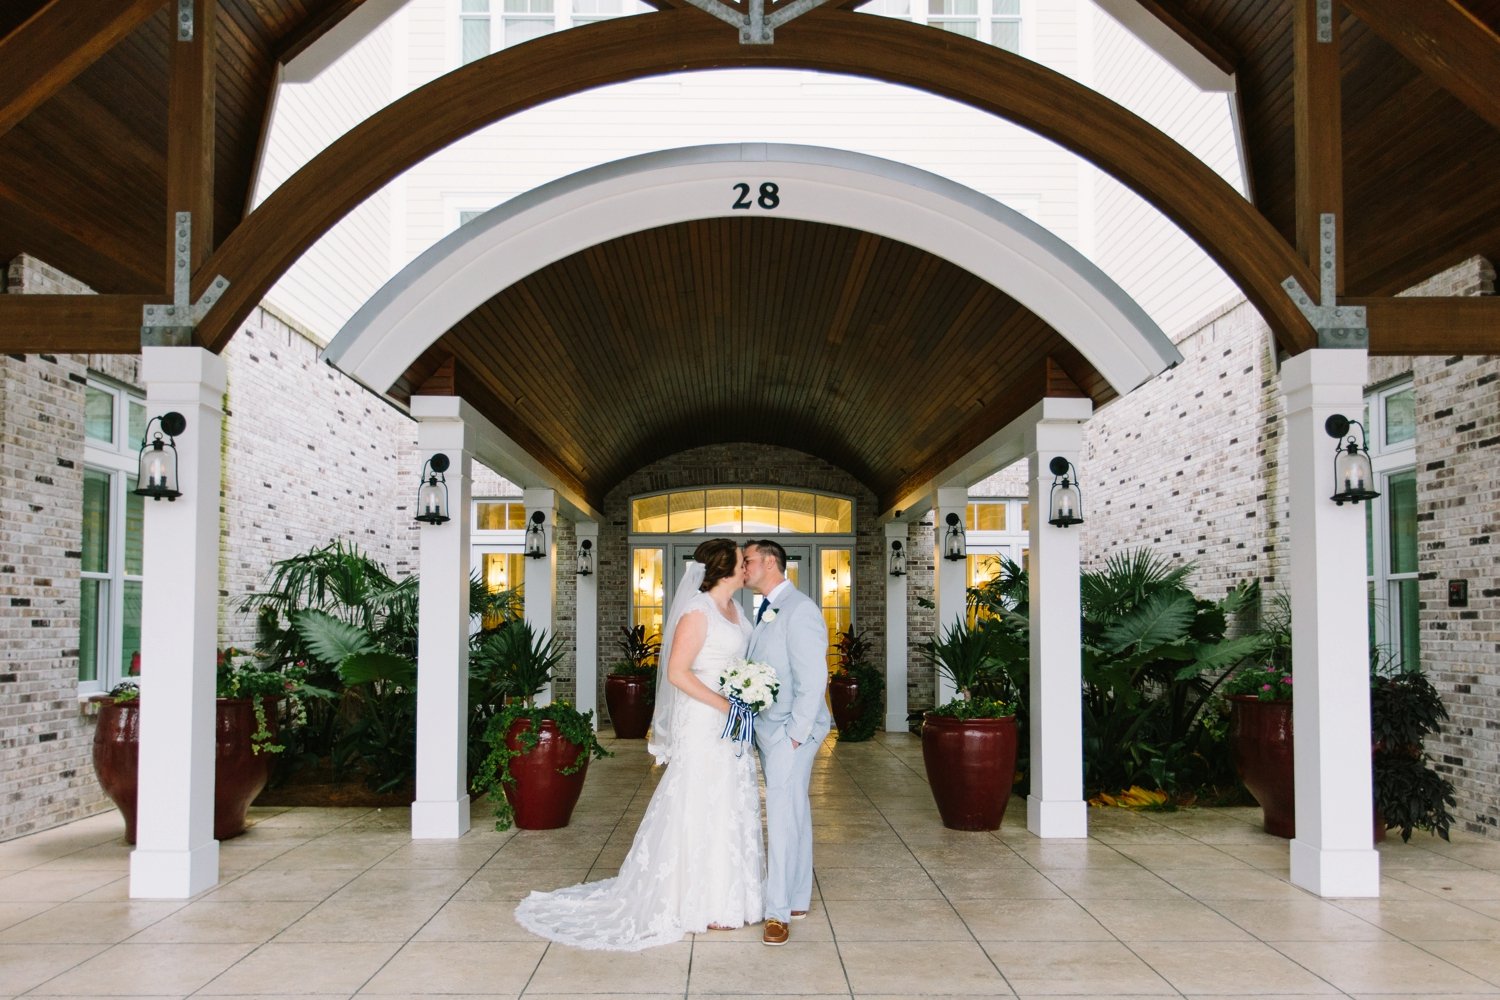 lindseyamillerphotography-charleston-harbor-resort-beach-wedding-31.JPG